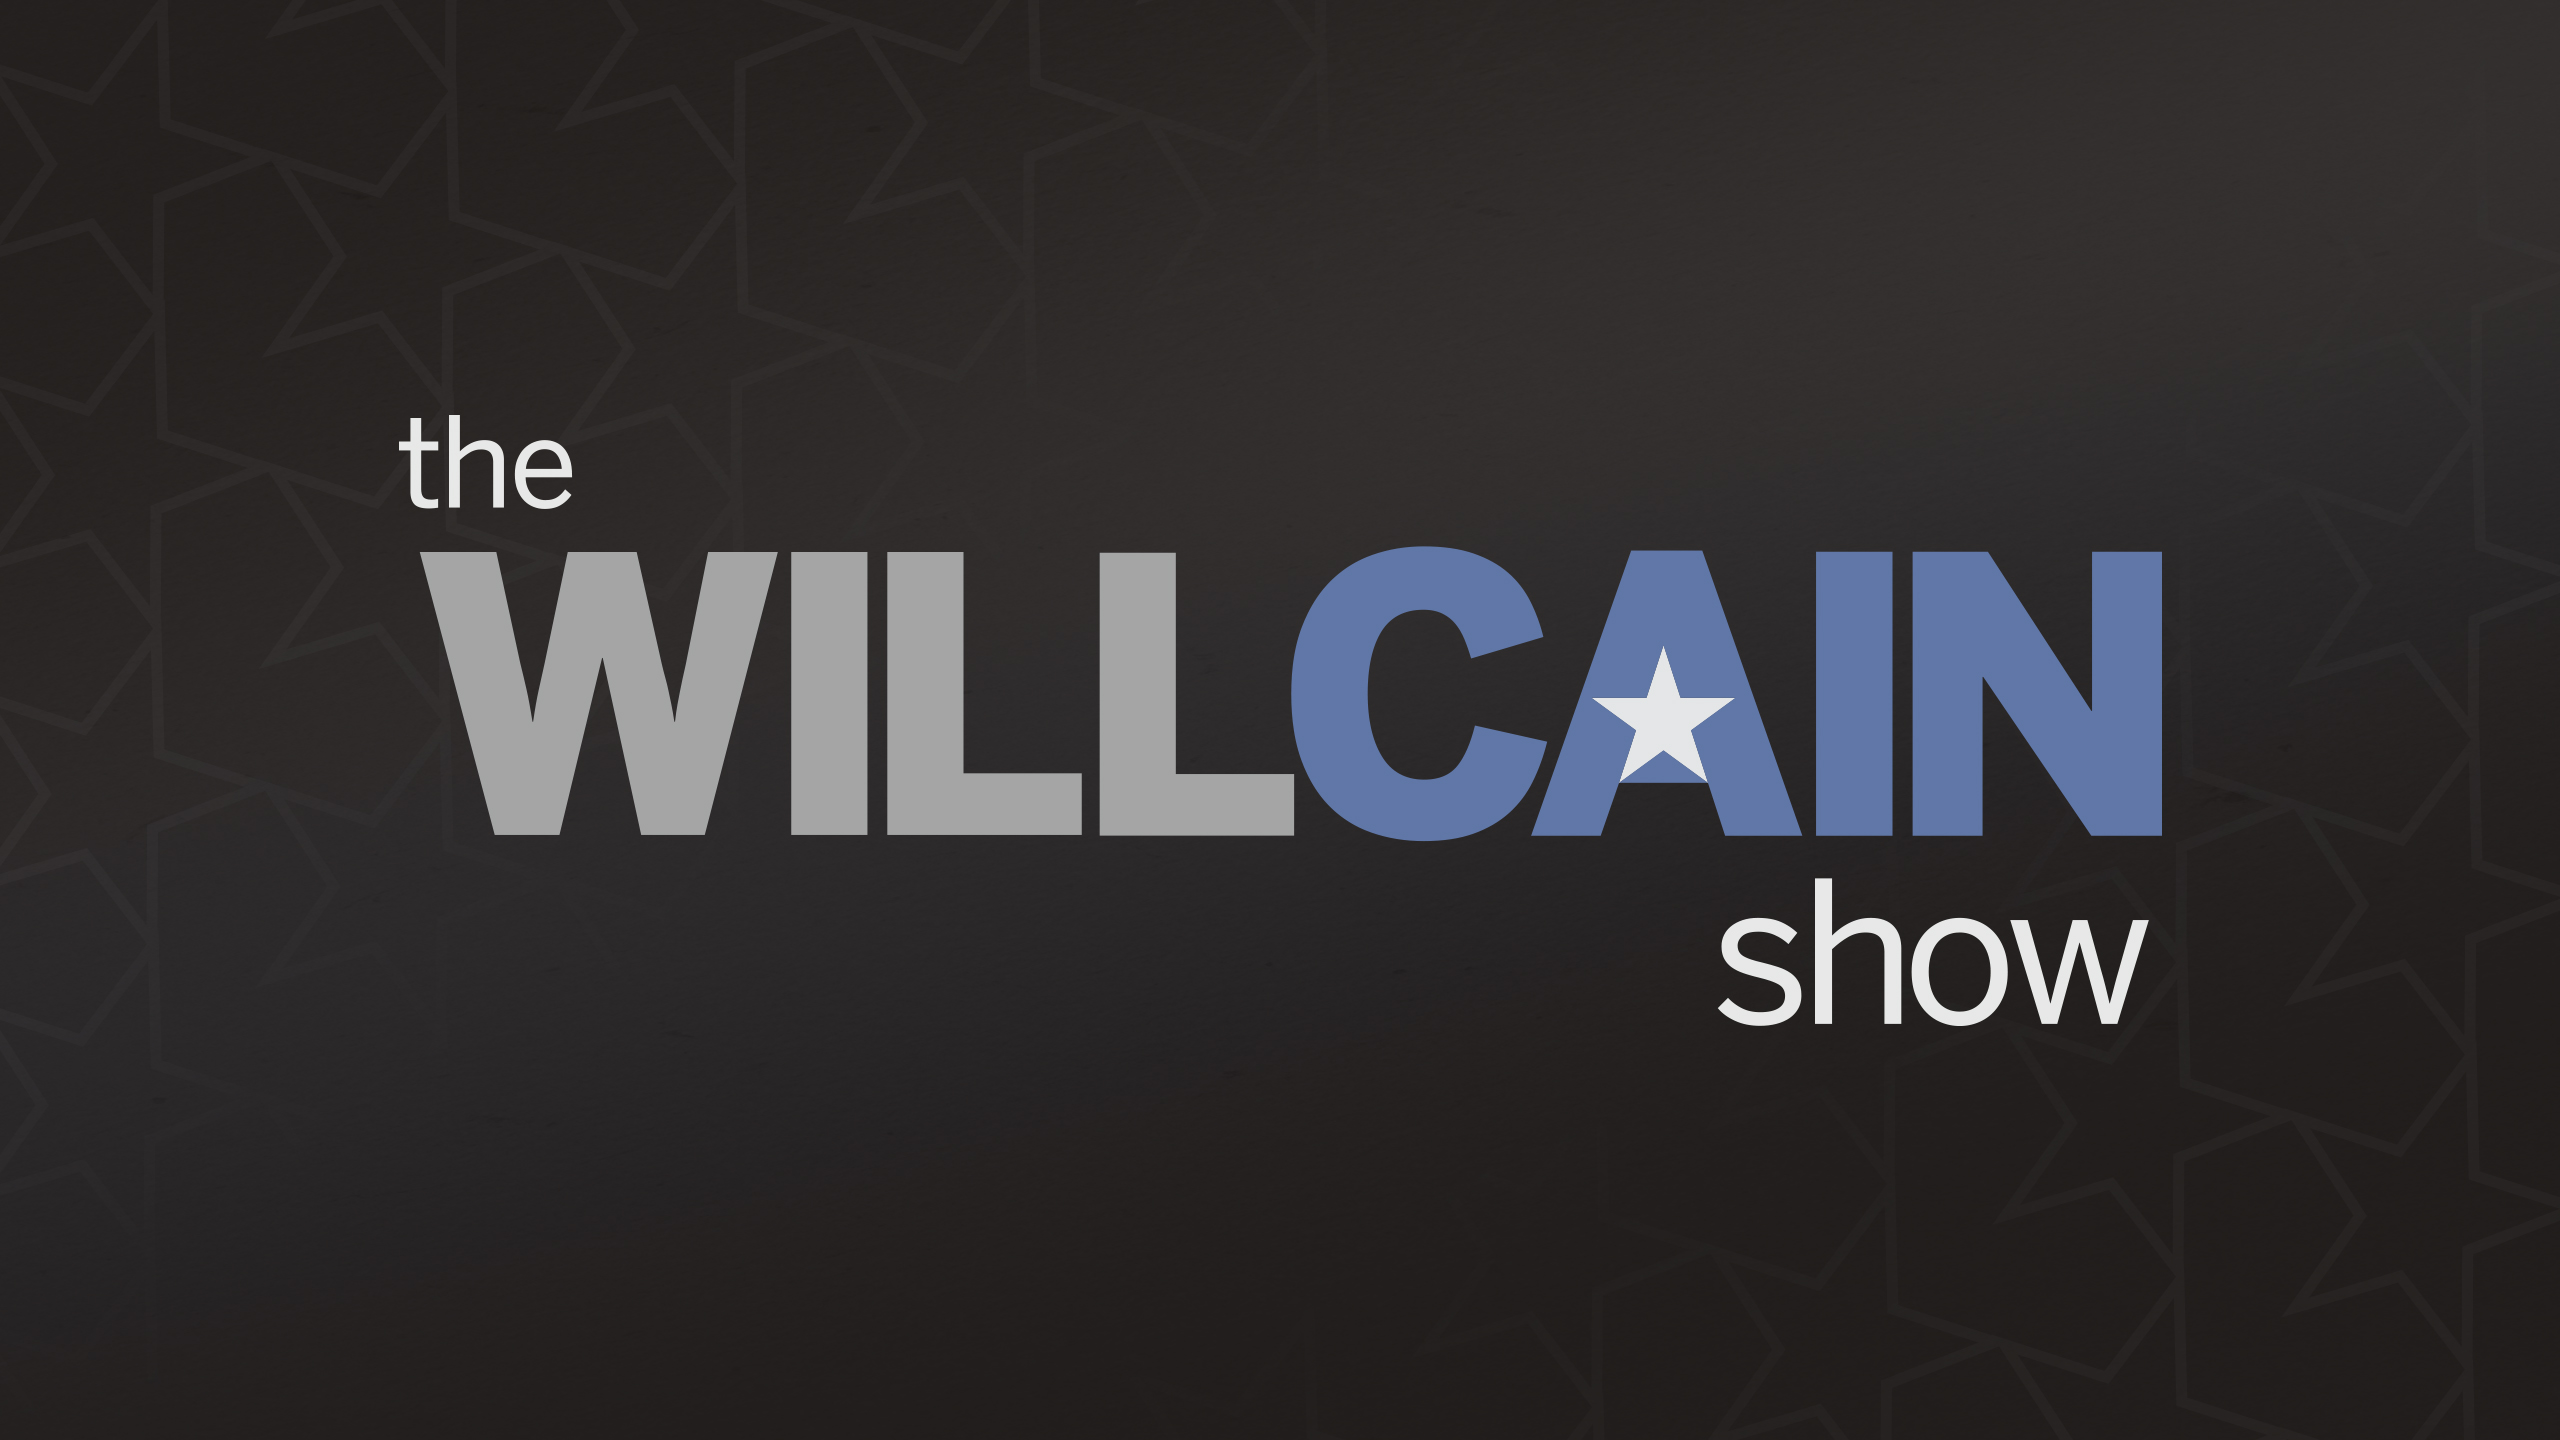 Thu, 2/21 - The Will Cain Show Presented by Progressive